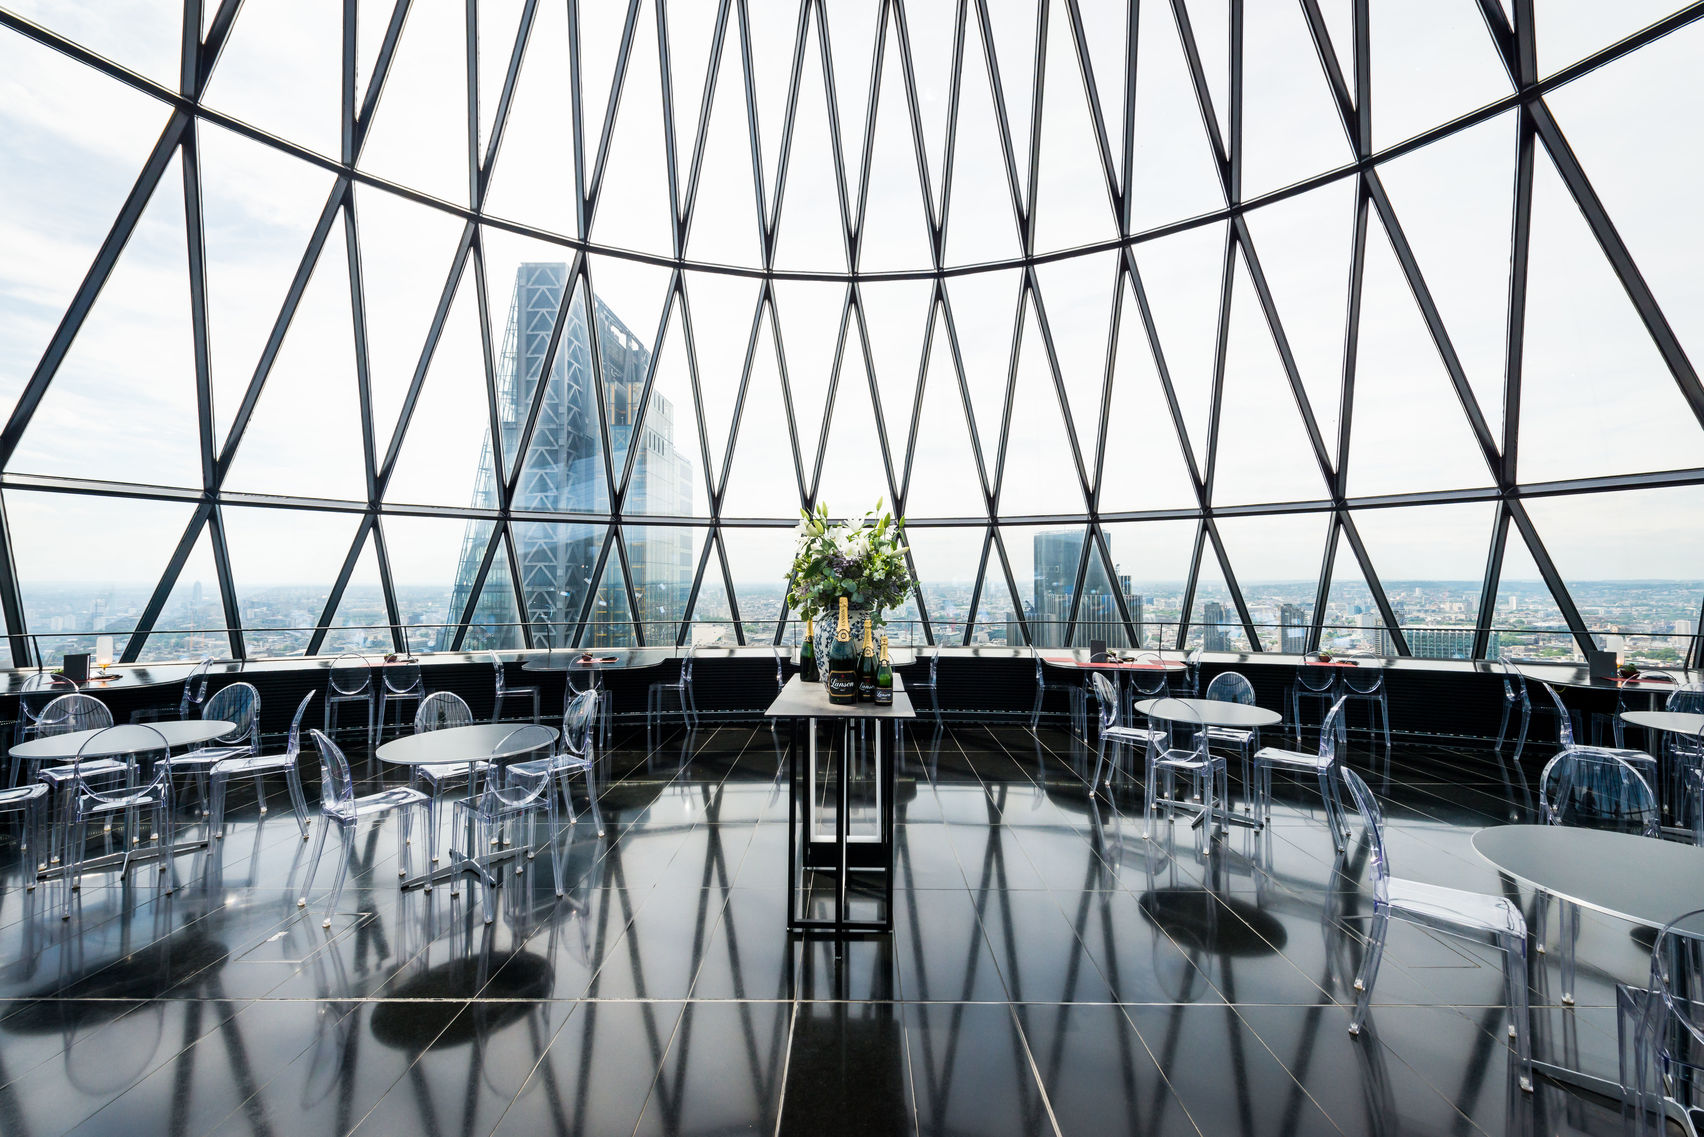 Exclusive Hire of the Restaurant & Bar, at The Gherkin